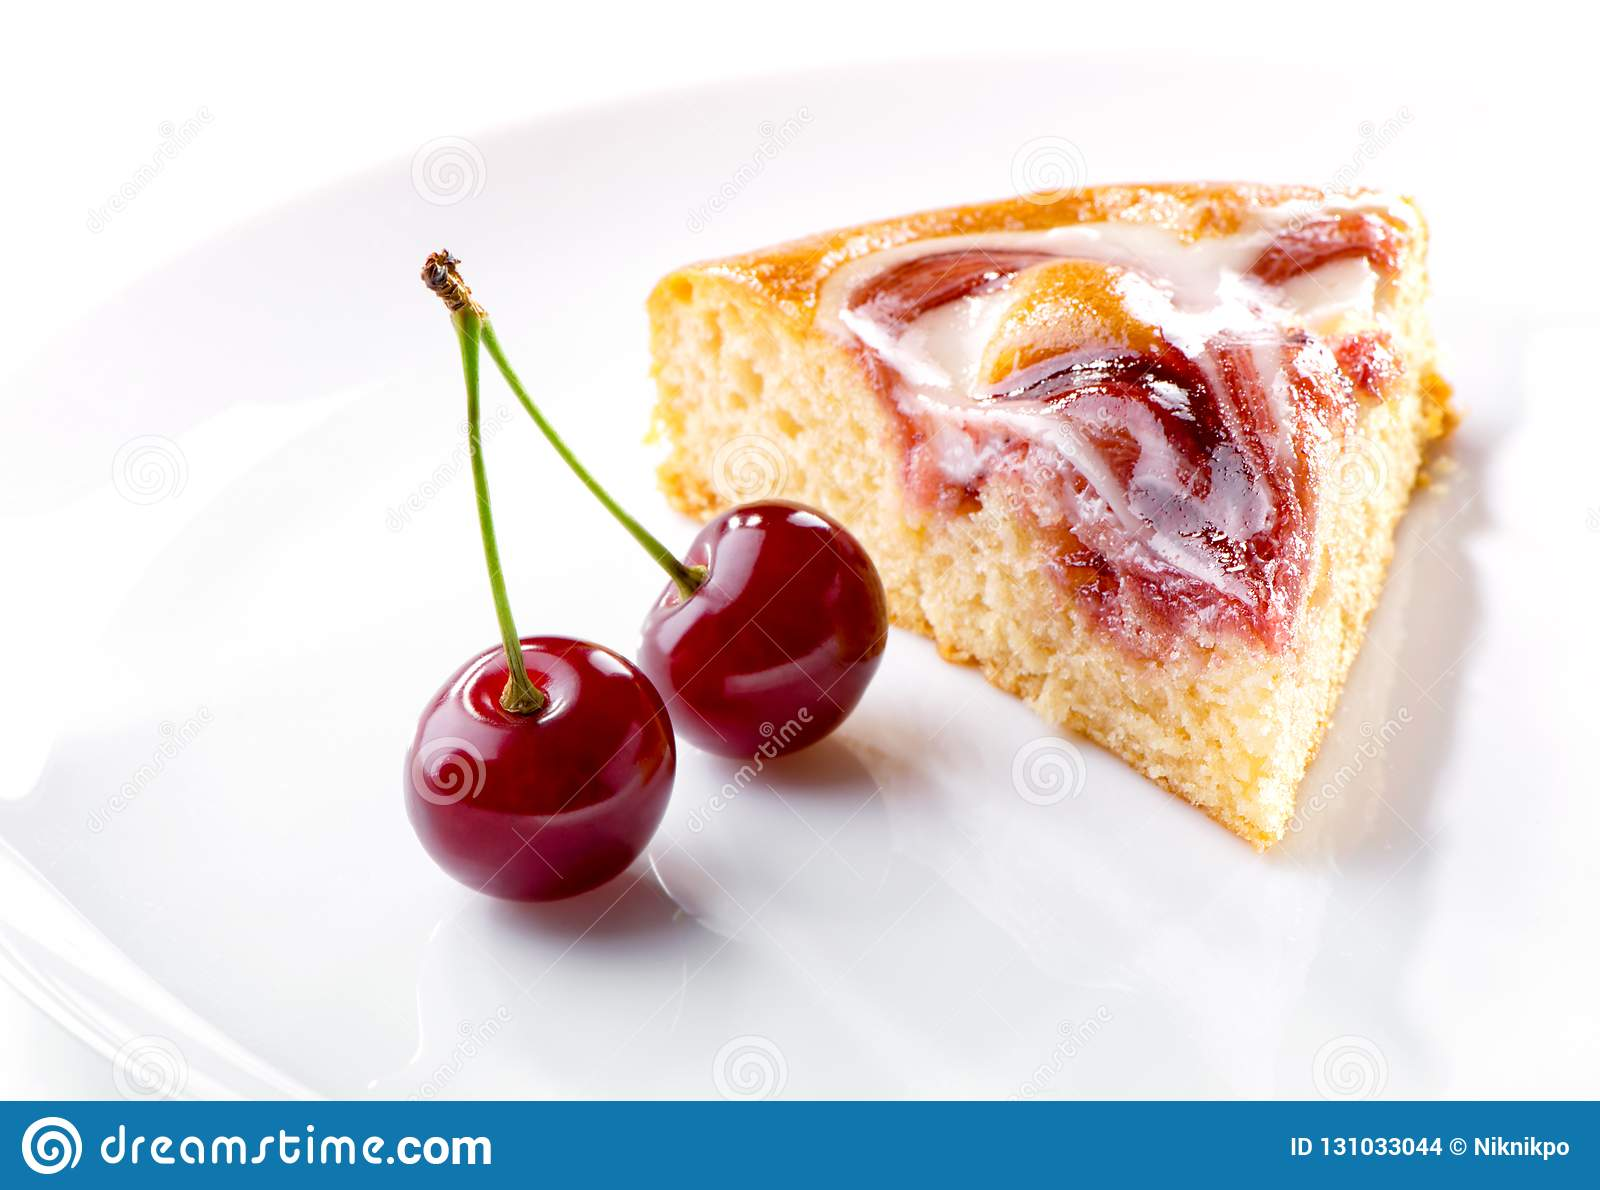 Cherry berries and piece of cream fruit pie on white plate close-up